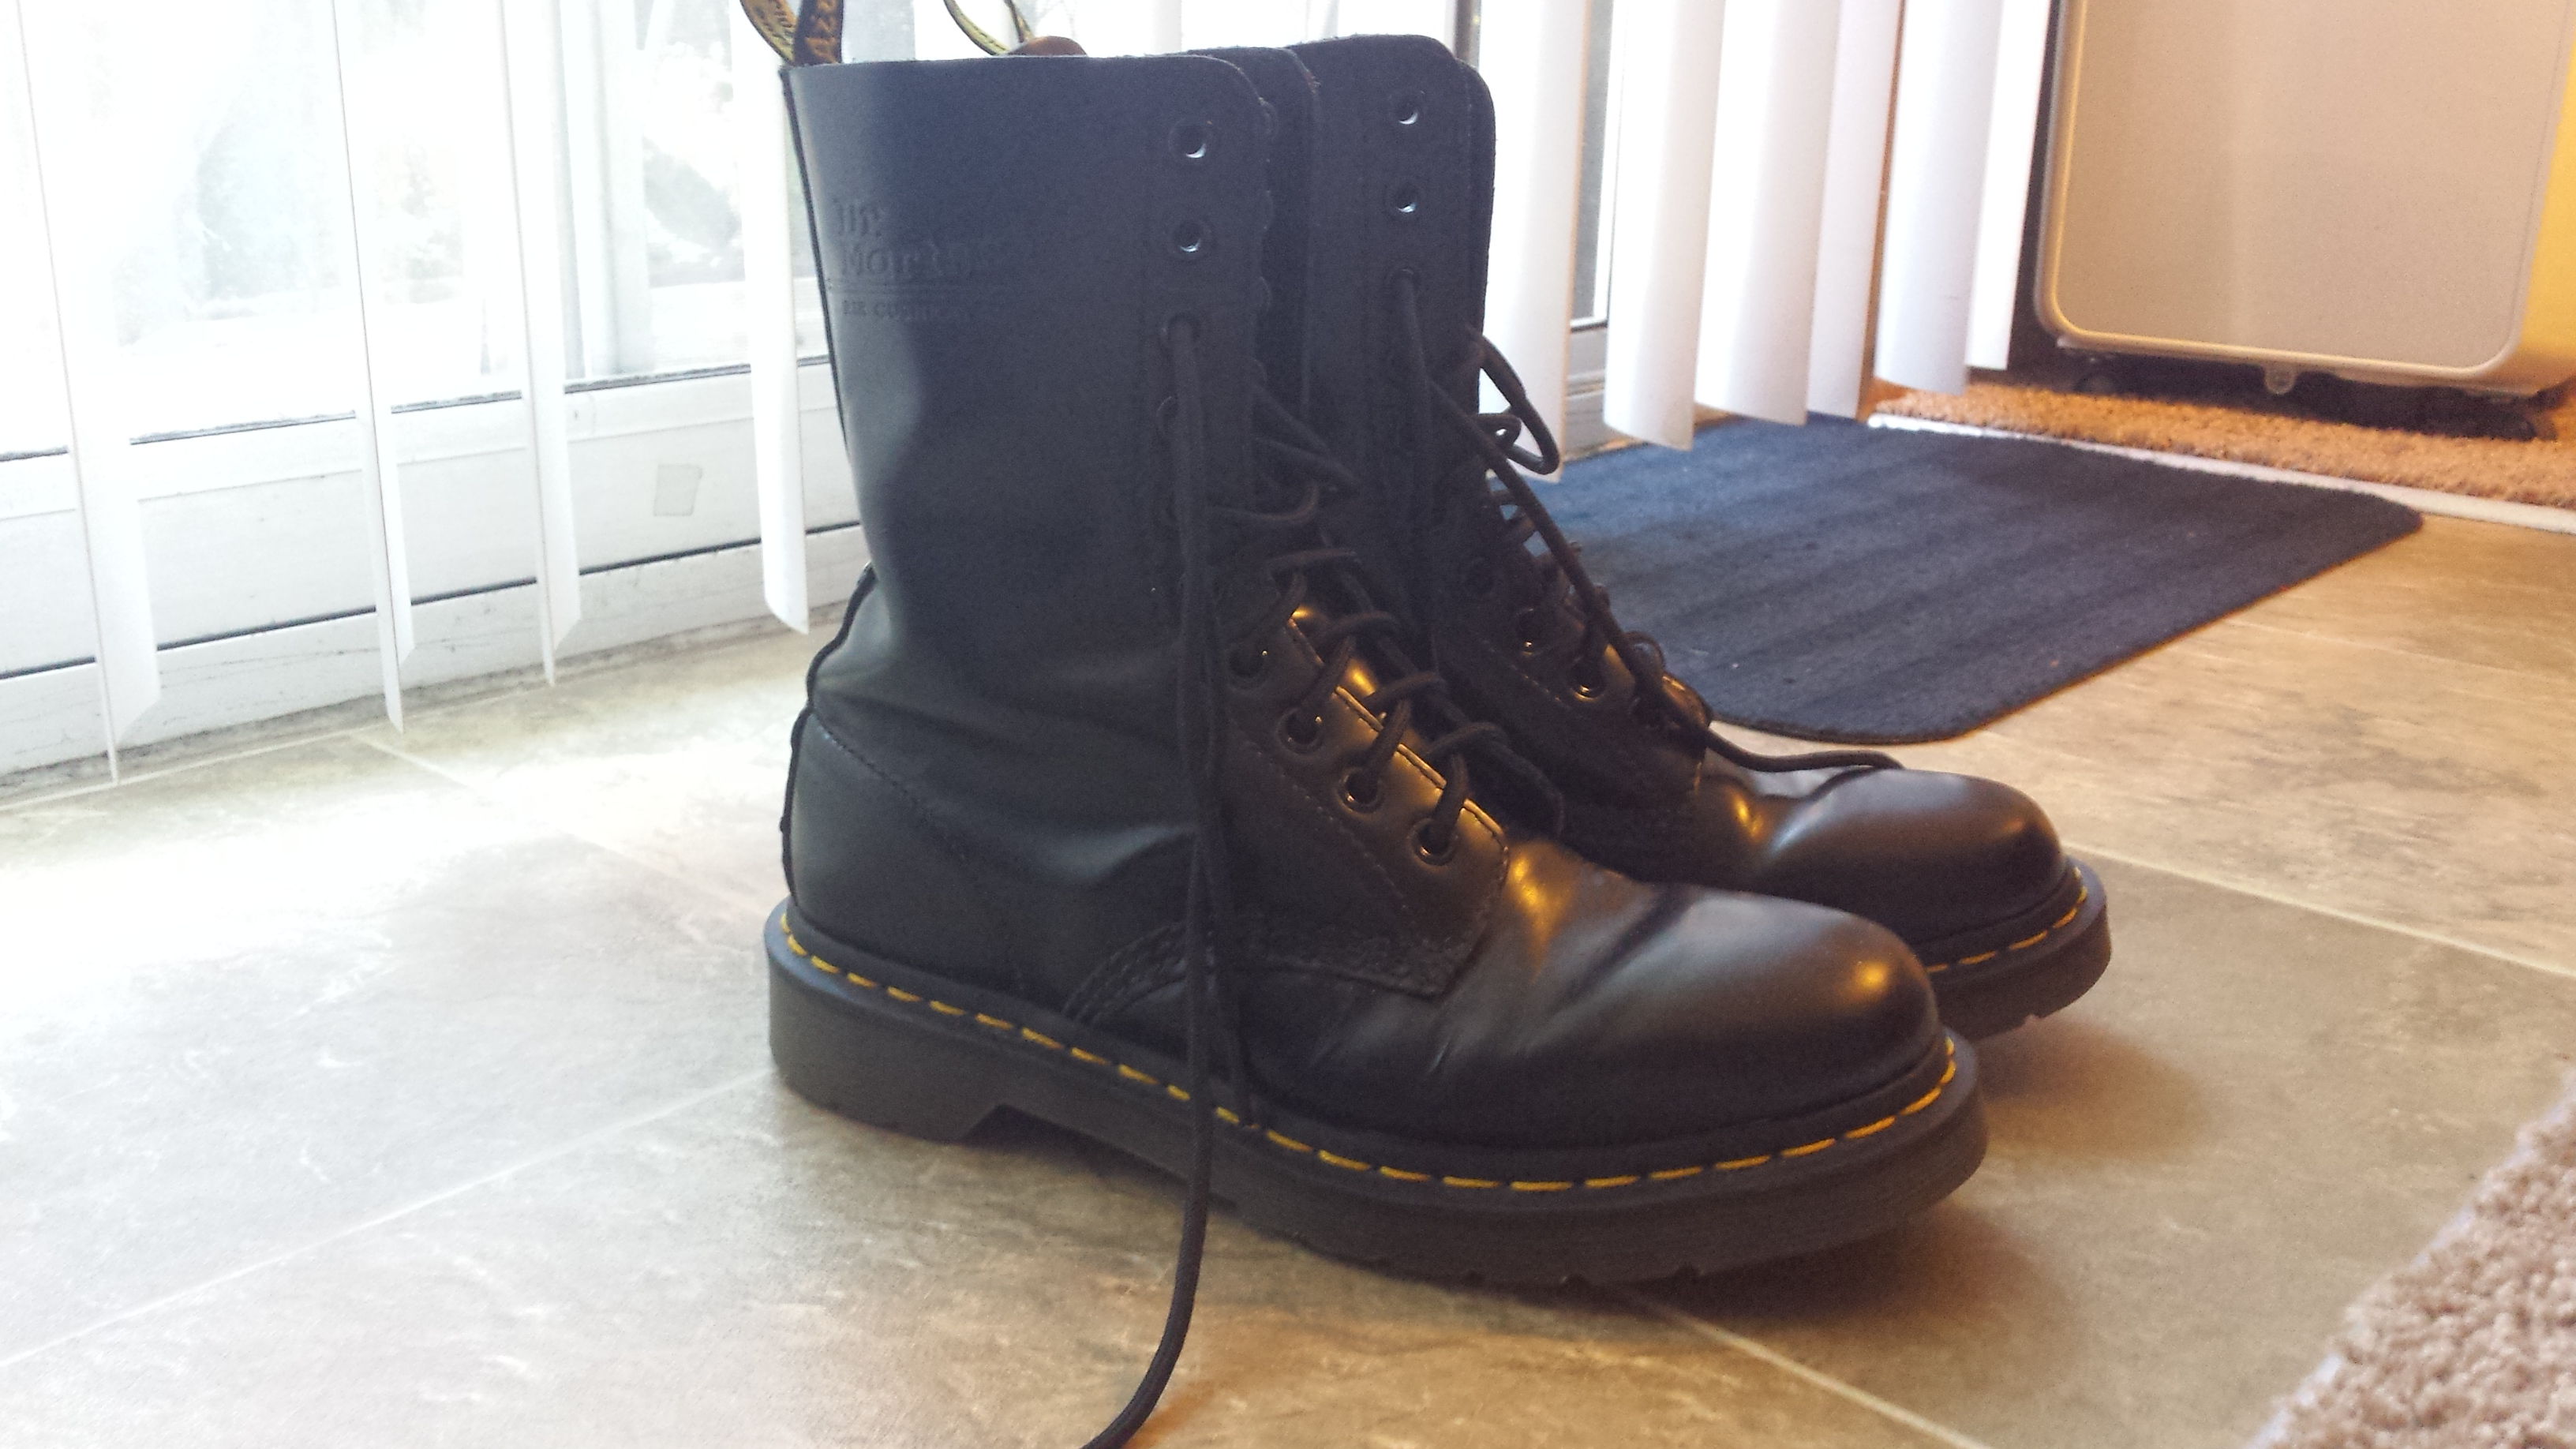 Dr. Martens 1490 Size 7 10 Eye Black Leather Boots on Storenvy 292380432